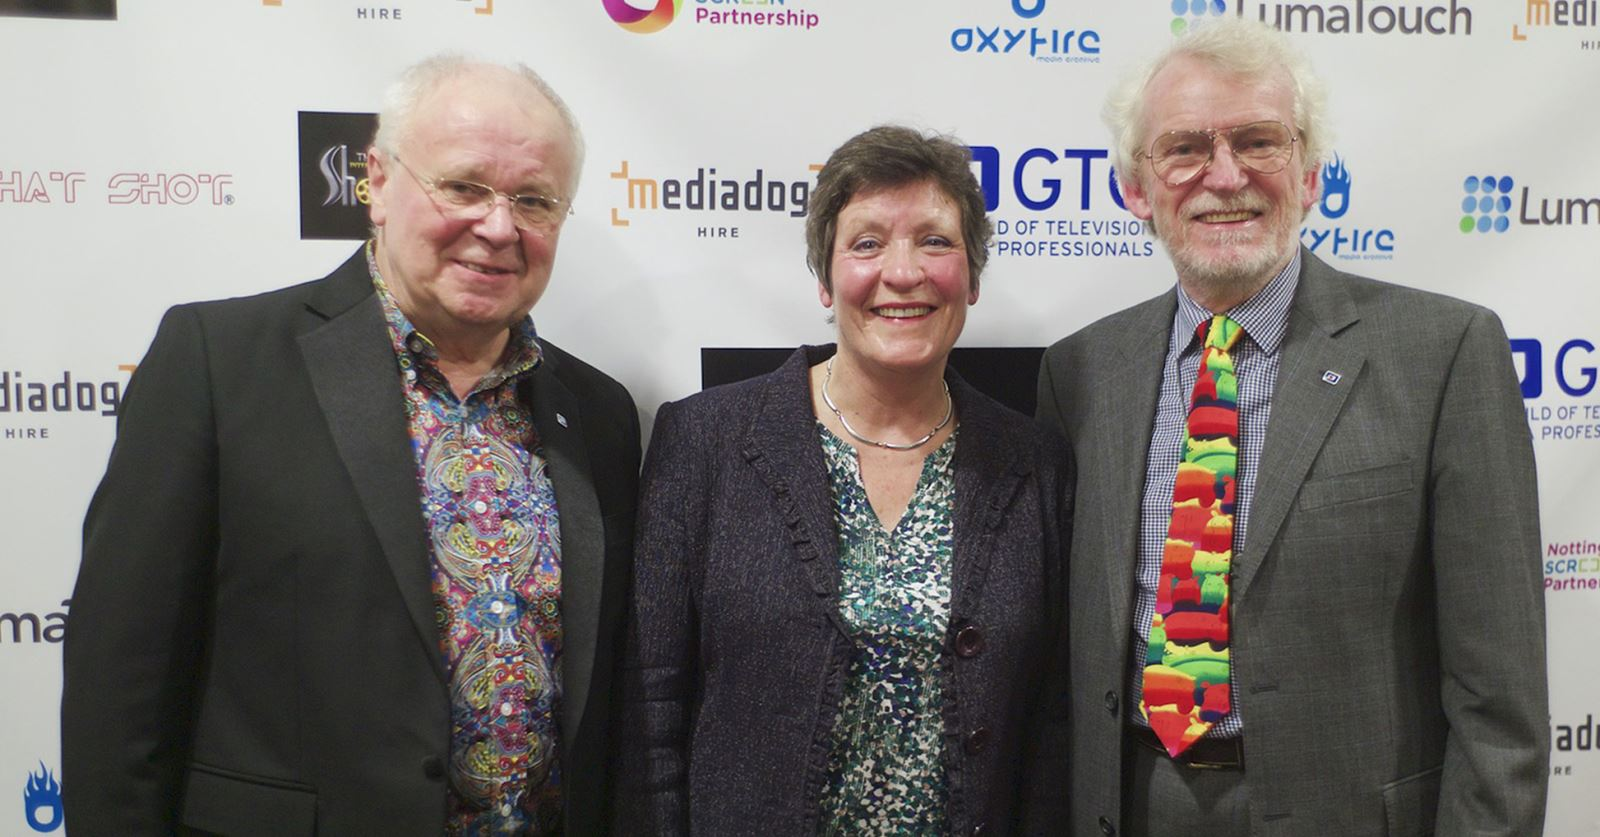 The GTC team at the International Short Film Show Awards: GTC President John Henshall, Helen Keep and John Tarby